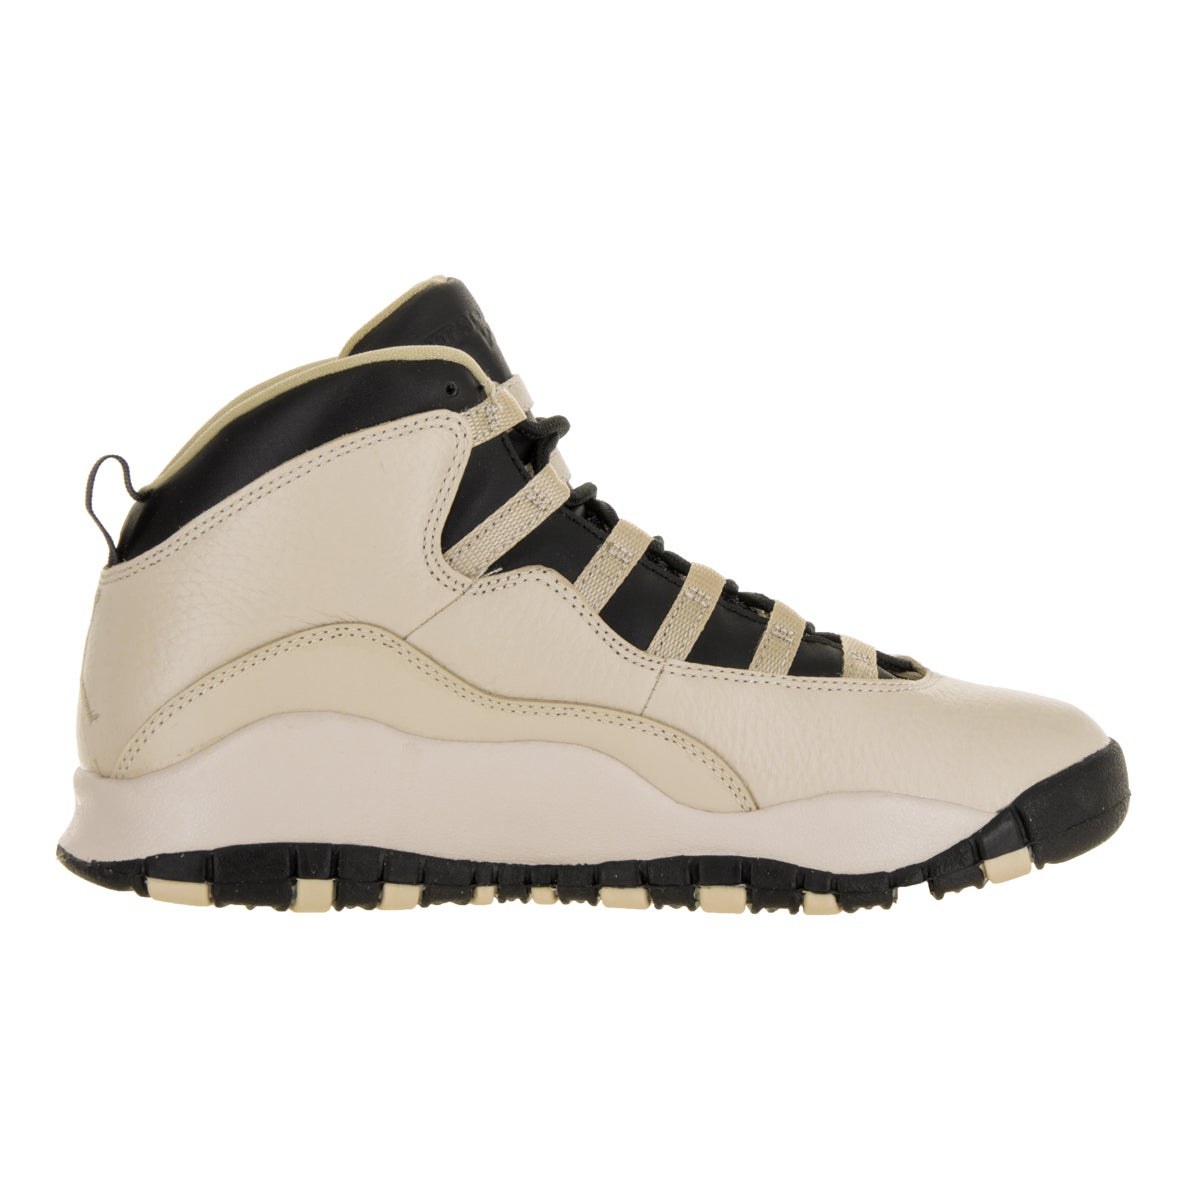 63b7c1c51801bb Shop Nike Jordan Kids  Jordan 10 Retro Beige and Black Leather Basketball  Shoes - Free Shipping Today - Overstock - 13394506 - 6